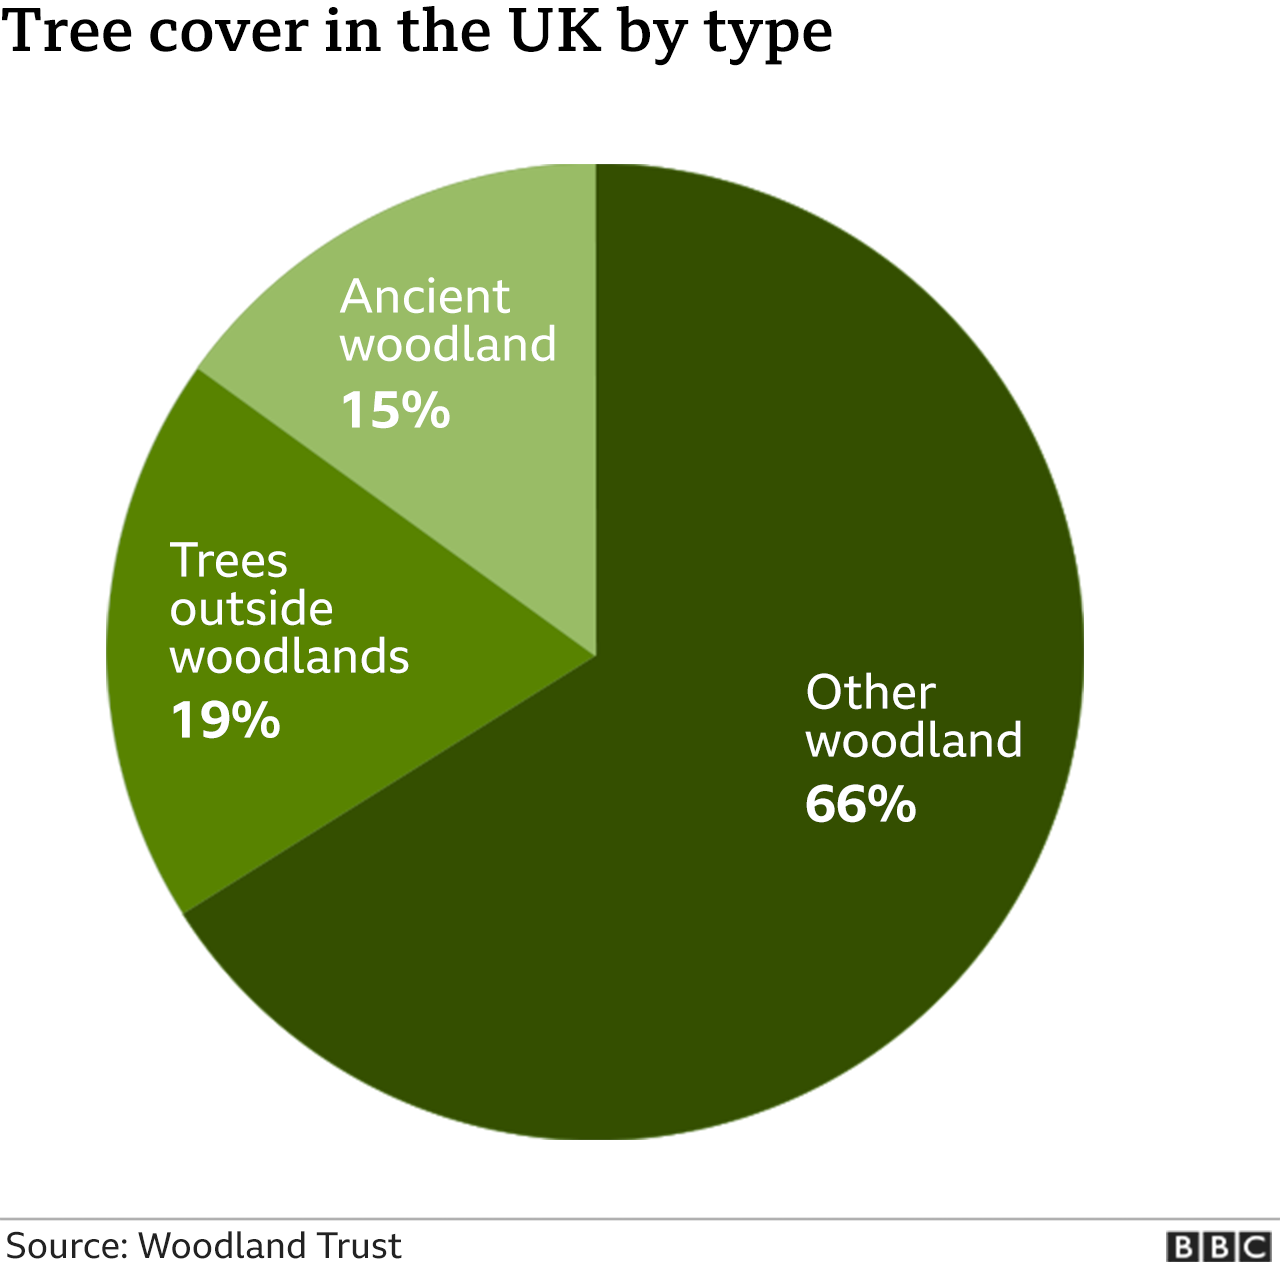 Chart showing tree cover in the usk by type: ancient woodland 15%; trees outside woodlands 19%; other woodland 66%.